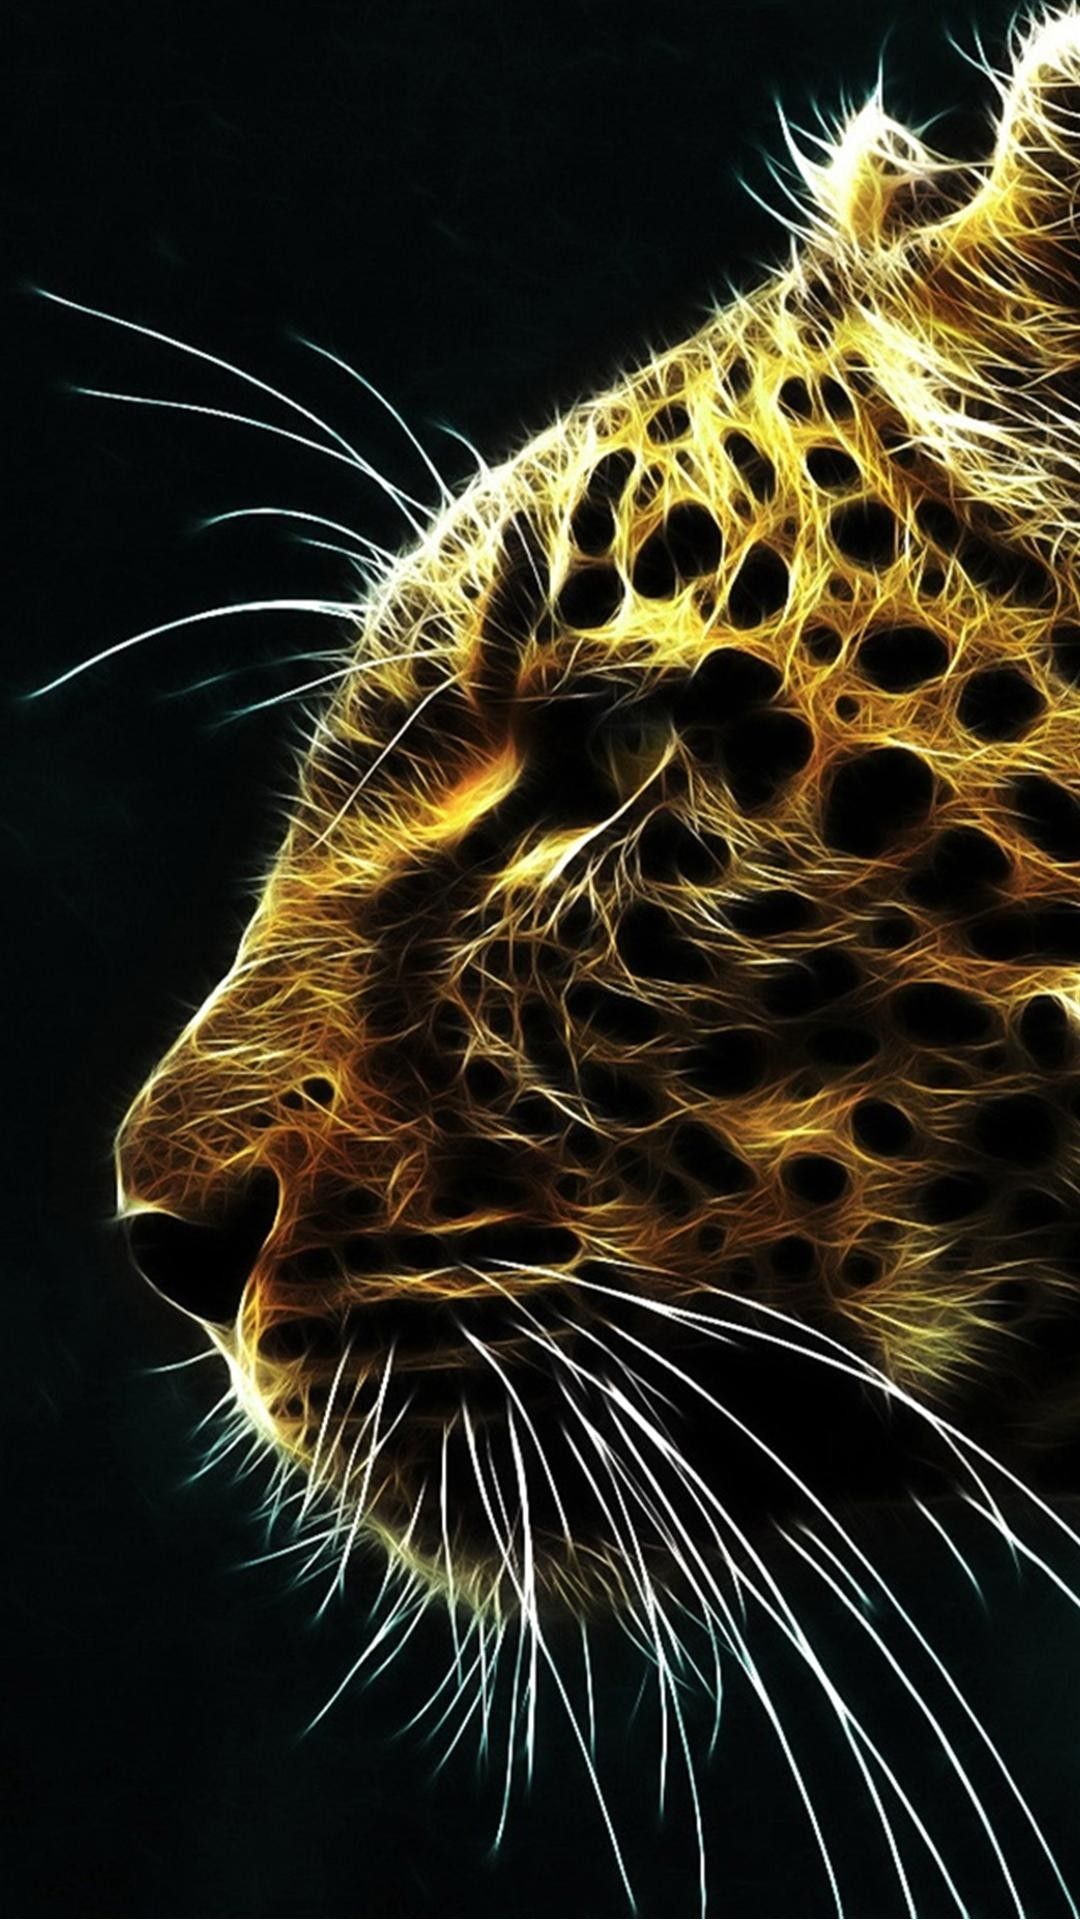 Abstract Tiger Wallpapers - Top Free Abstract Tiger ...